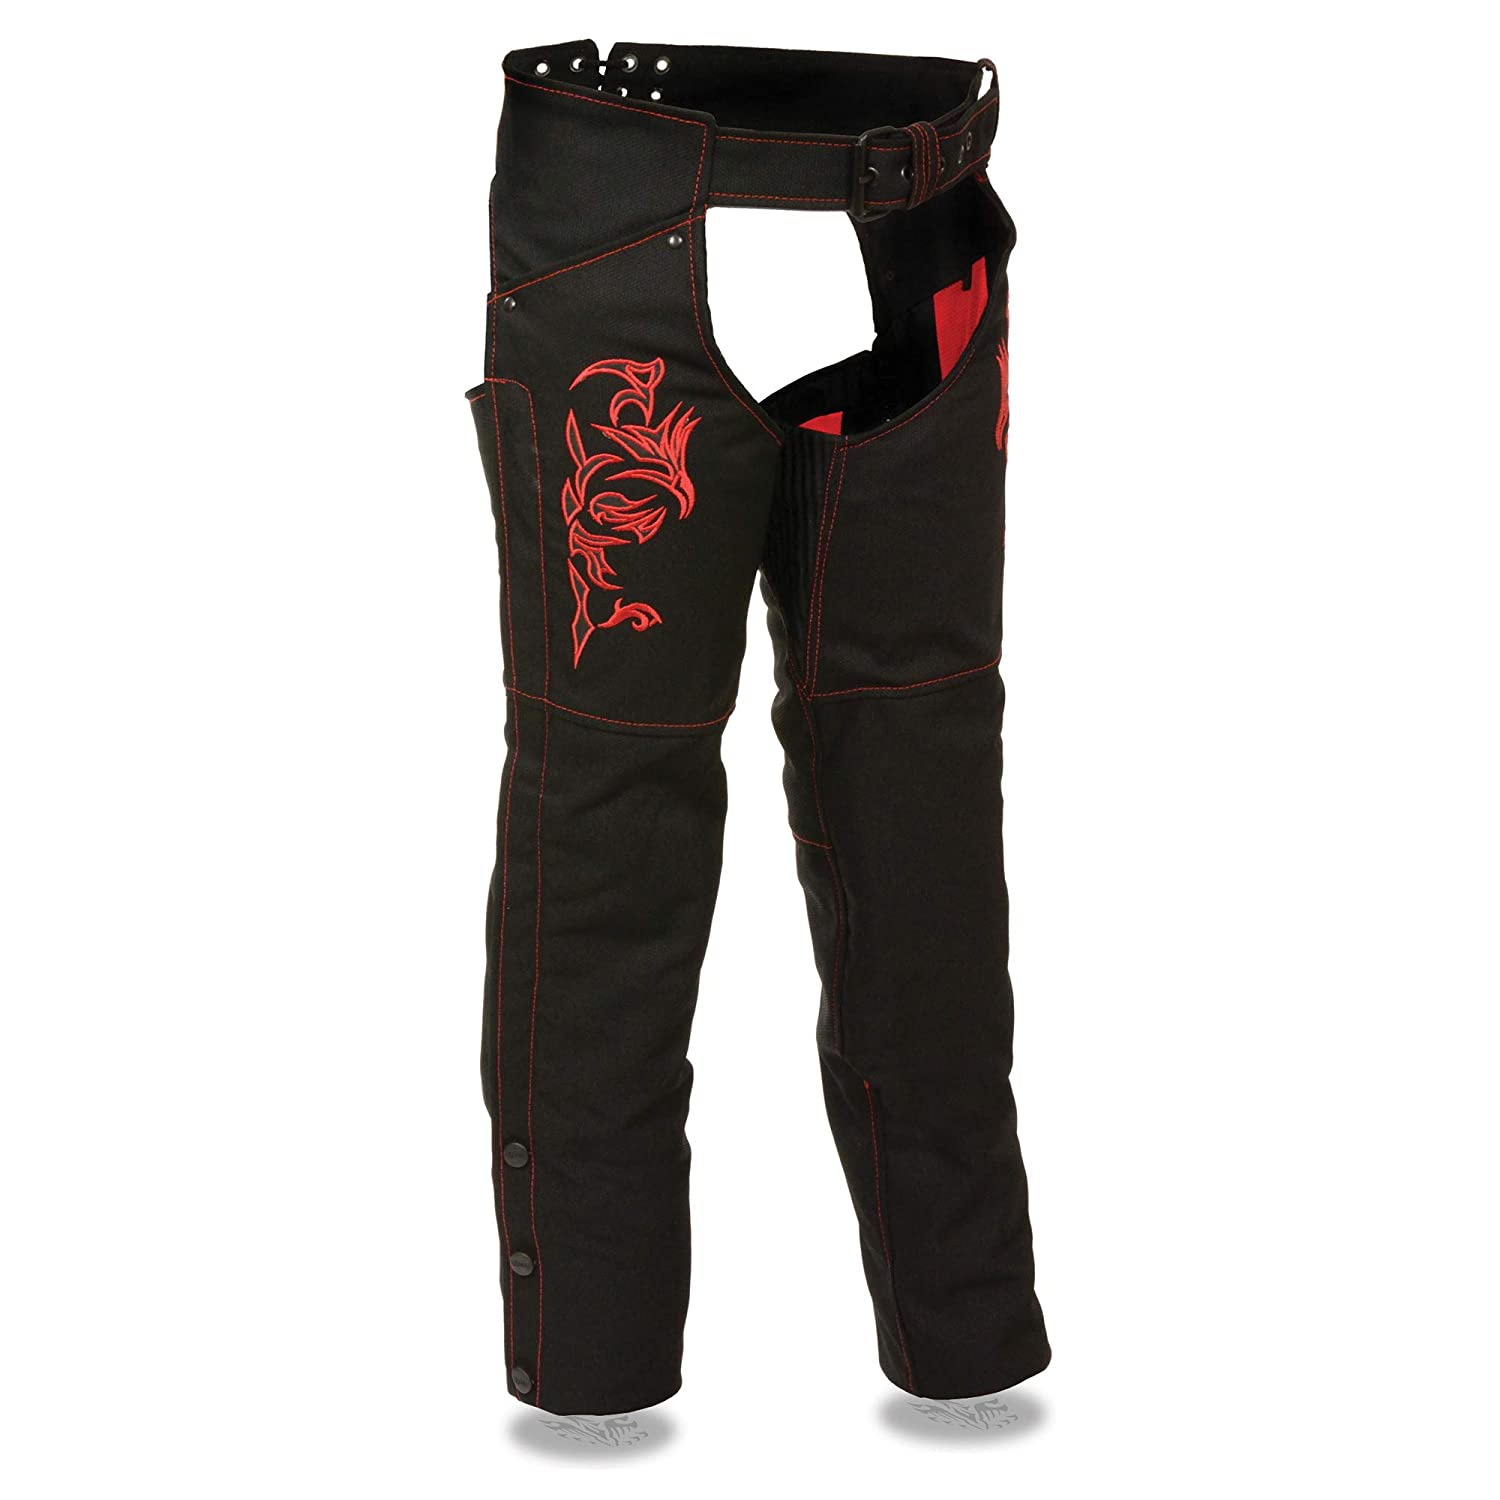 Reflective Detail Milwaukee Leathers SH1182-BLKBLK Womens Textile Chap Tribal Embroidery